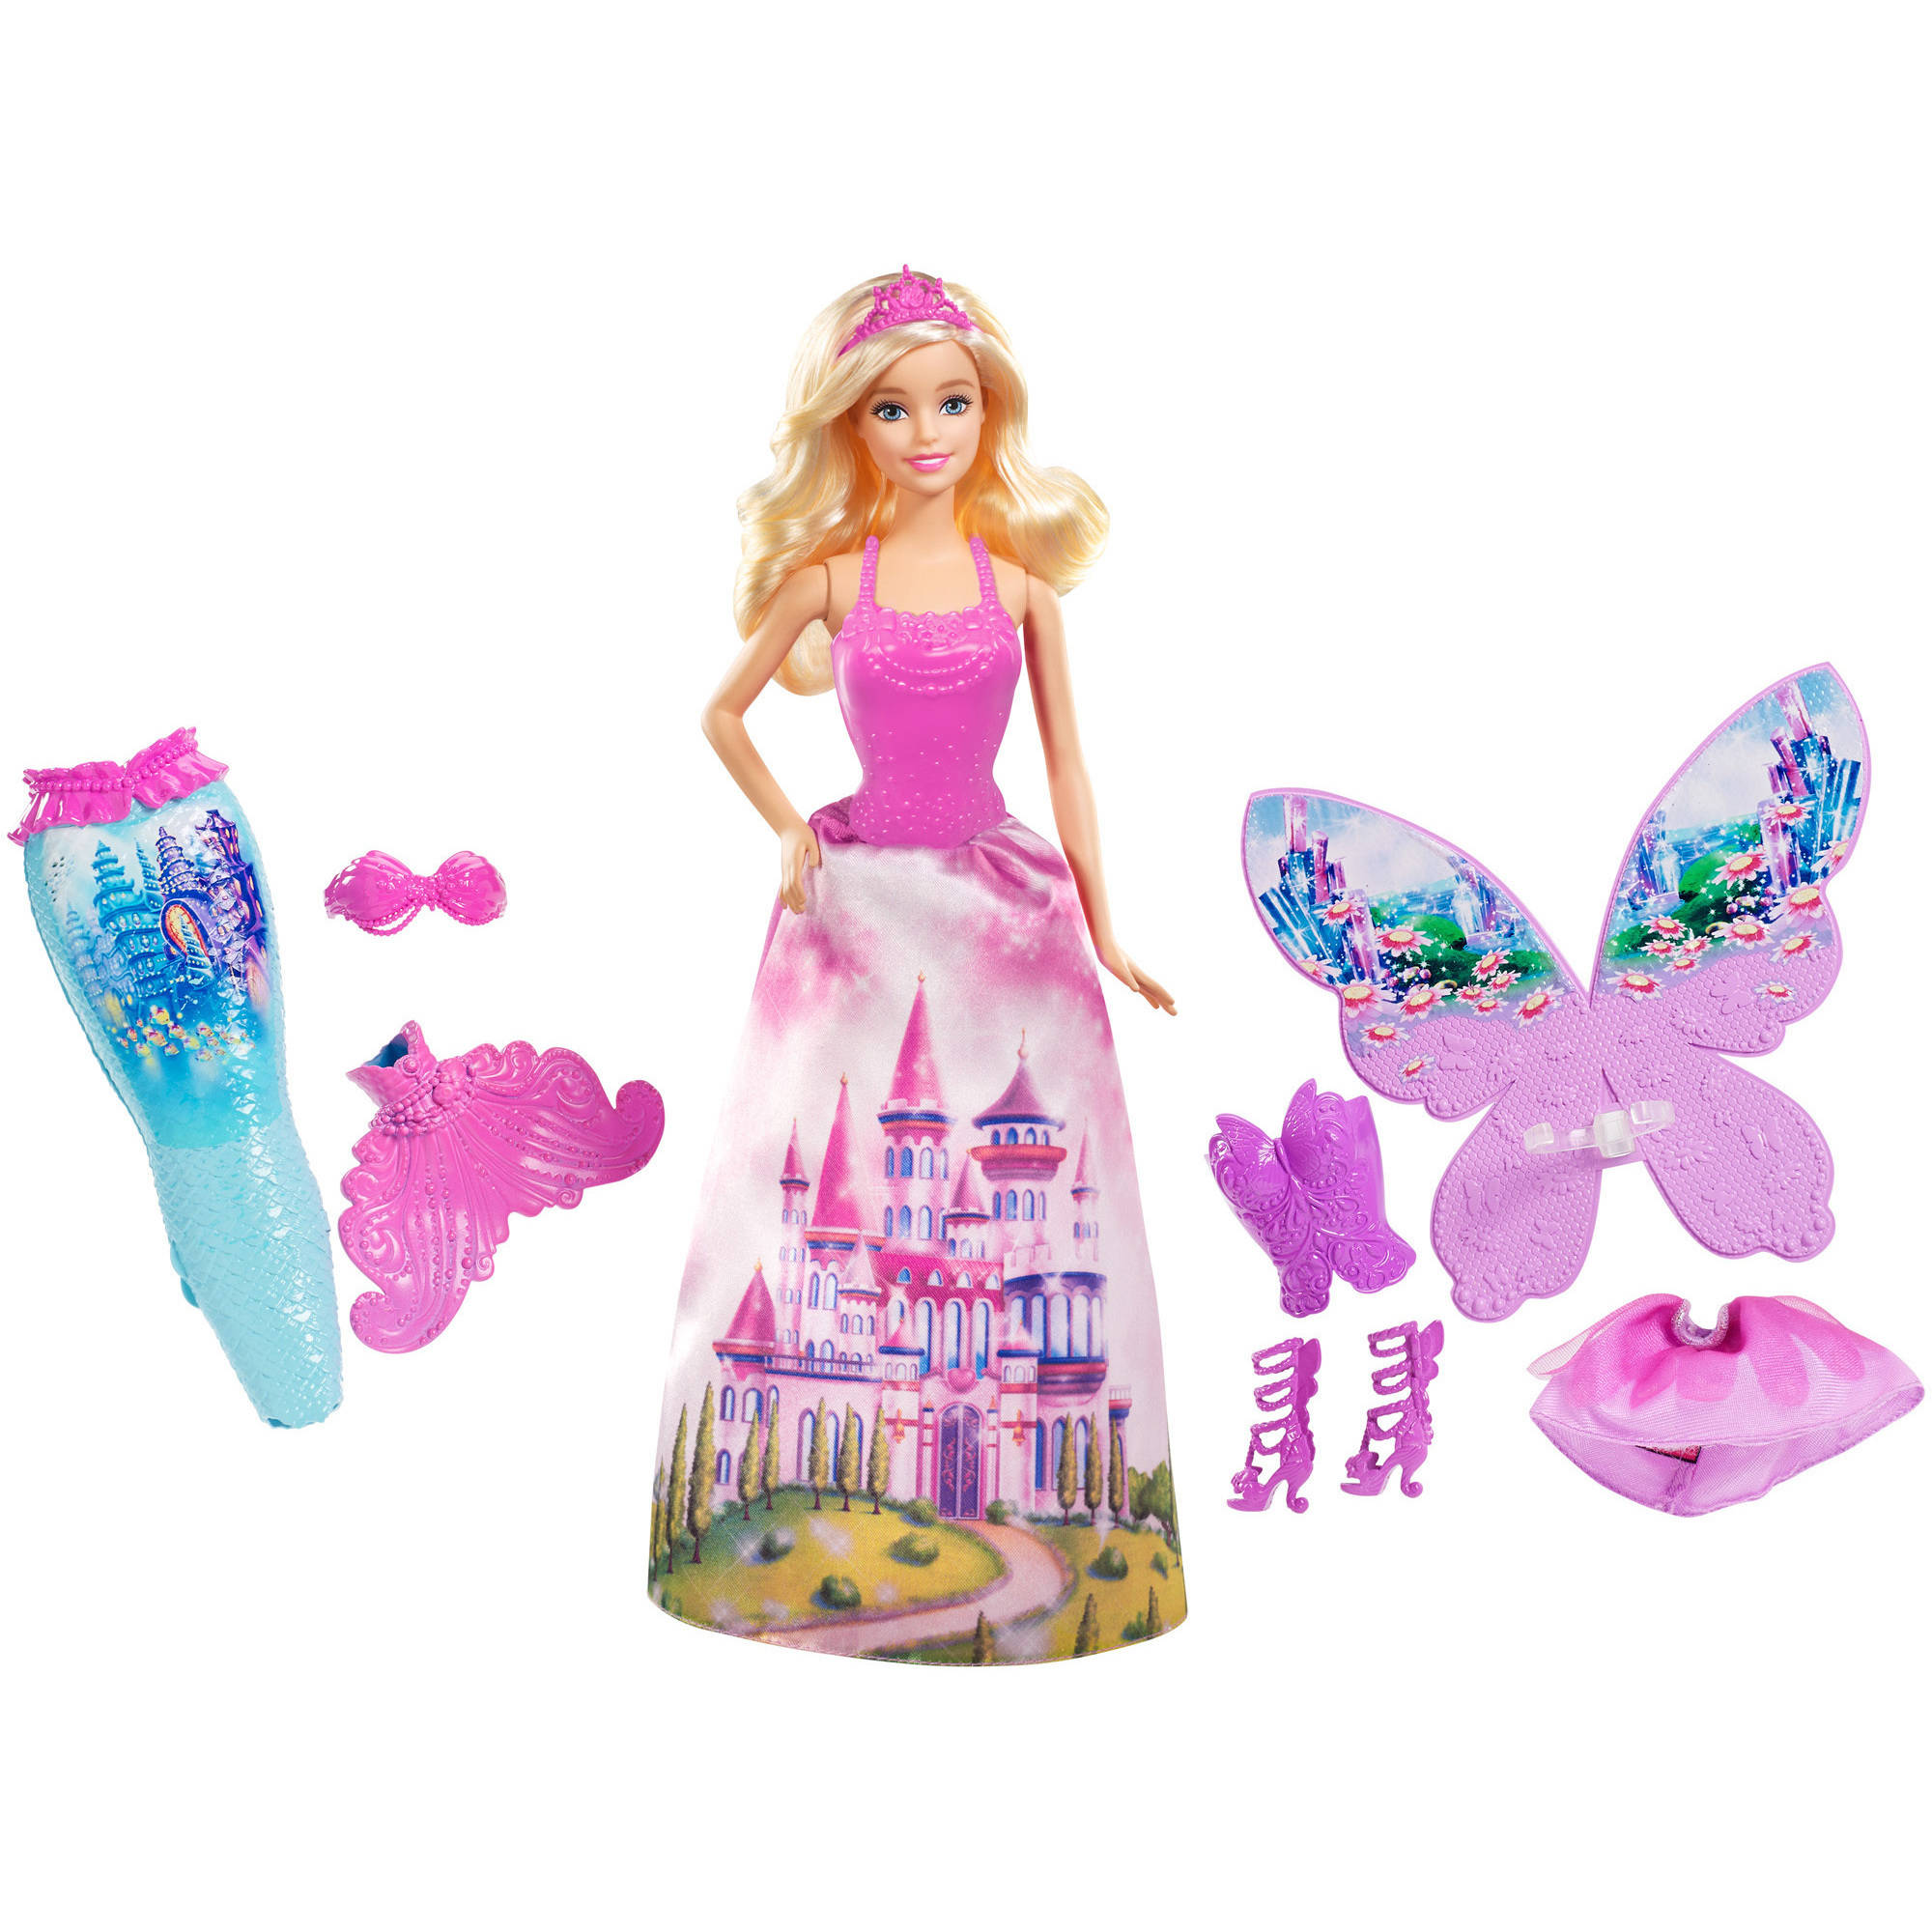 Barbie Fairytale Gift Set Walmart